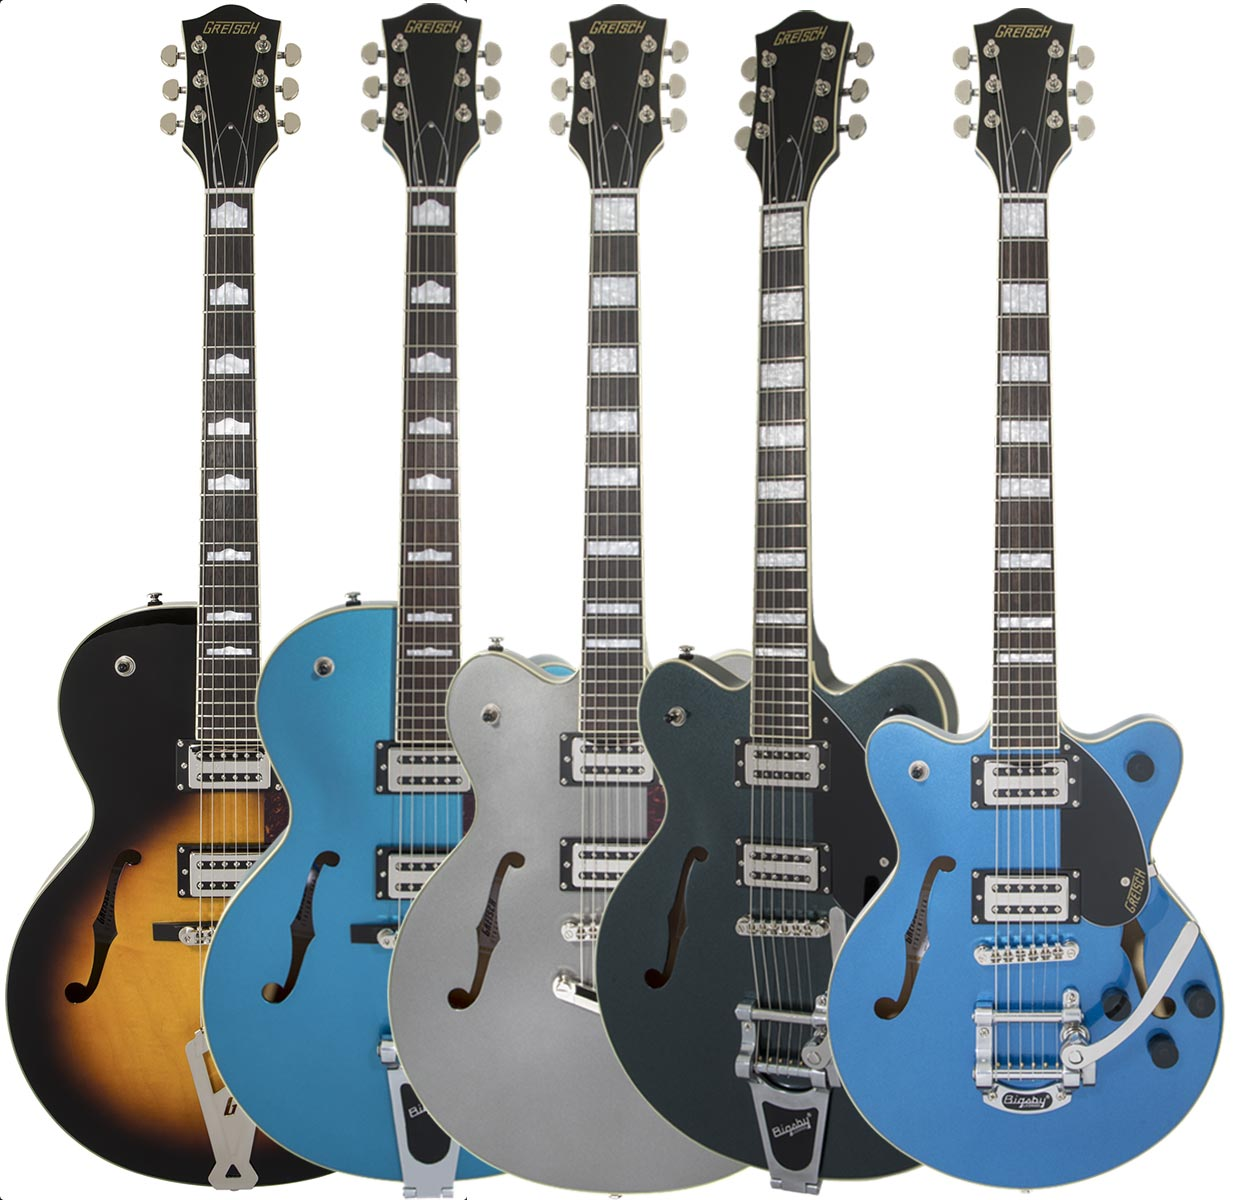 Check out he New Gretsch Streamliner Series